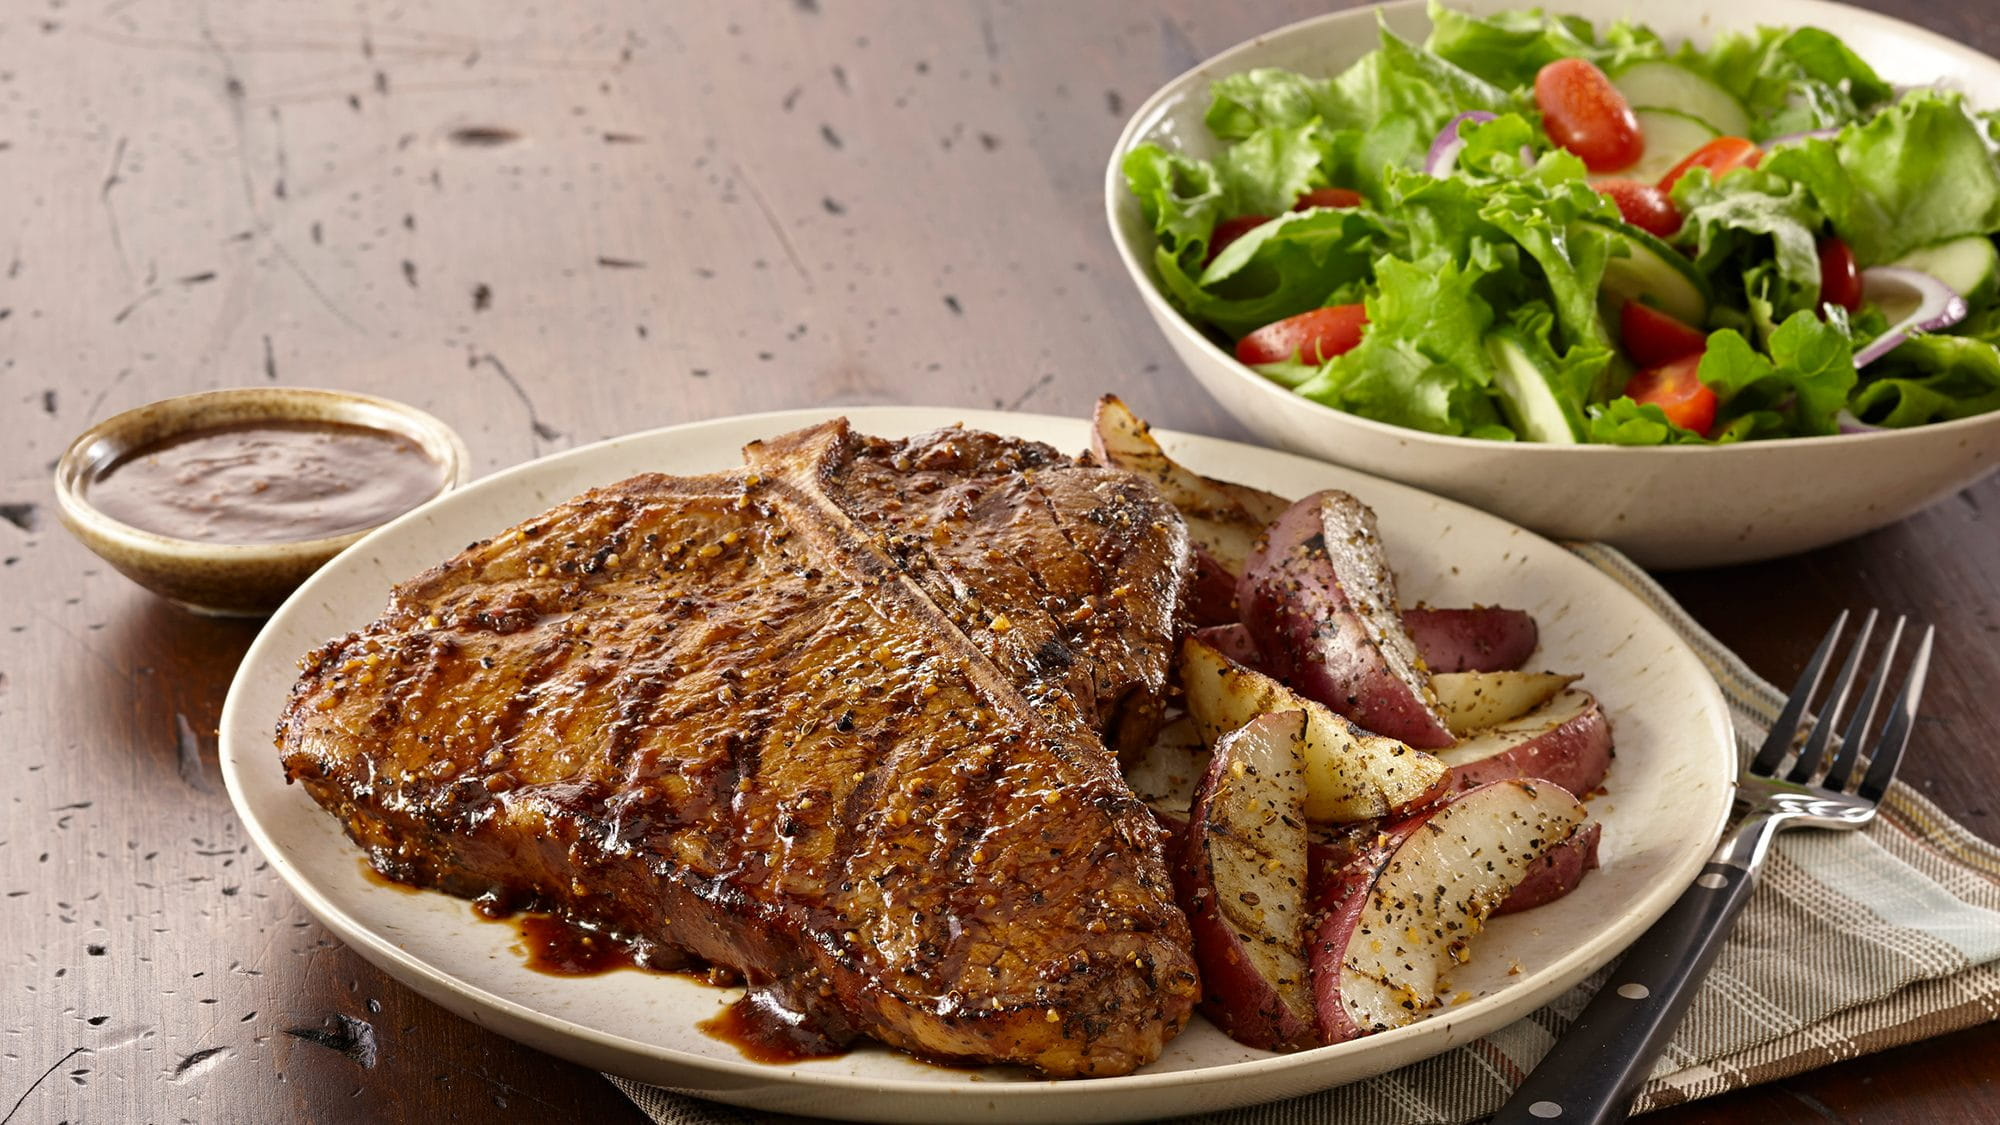 ULTIMATE MONTREAL STEAK WITH GRILLED POTATO WEDGES